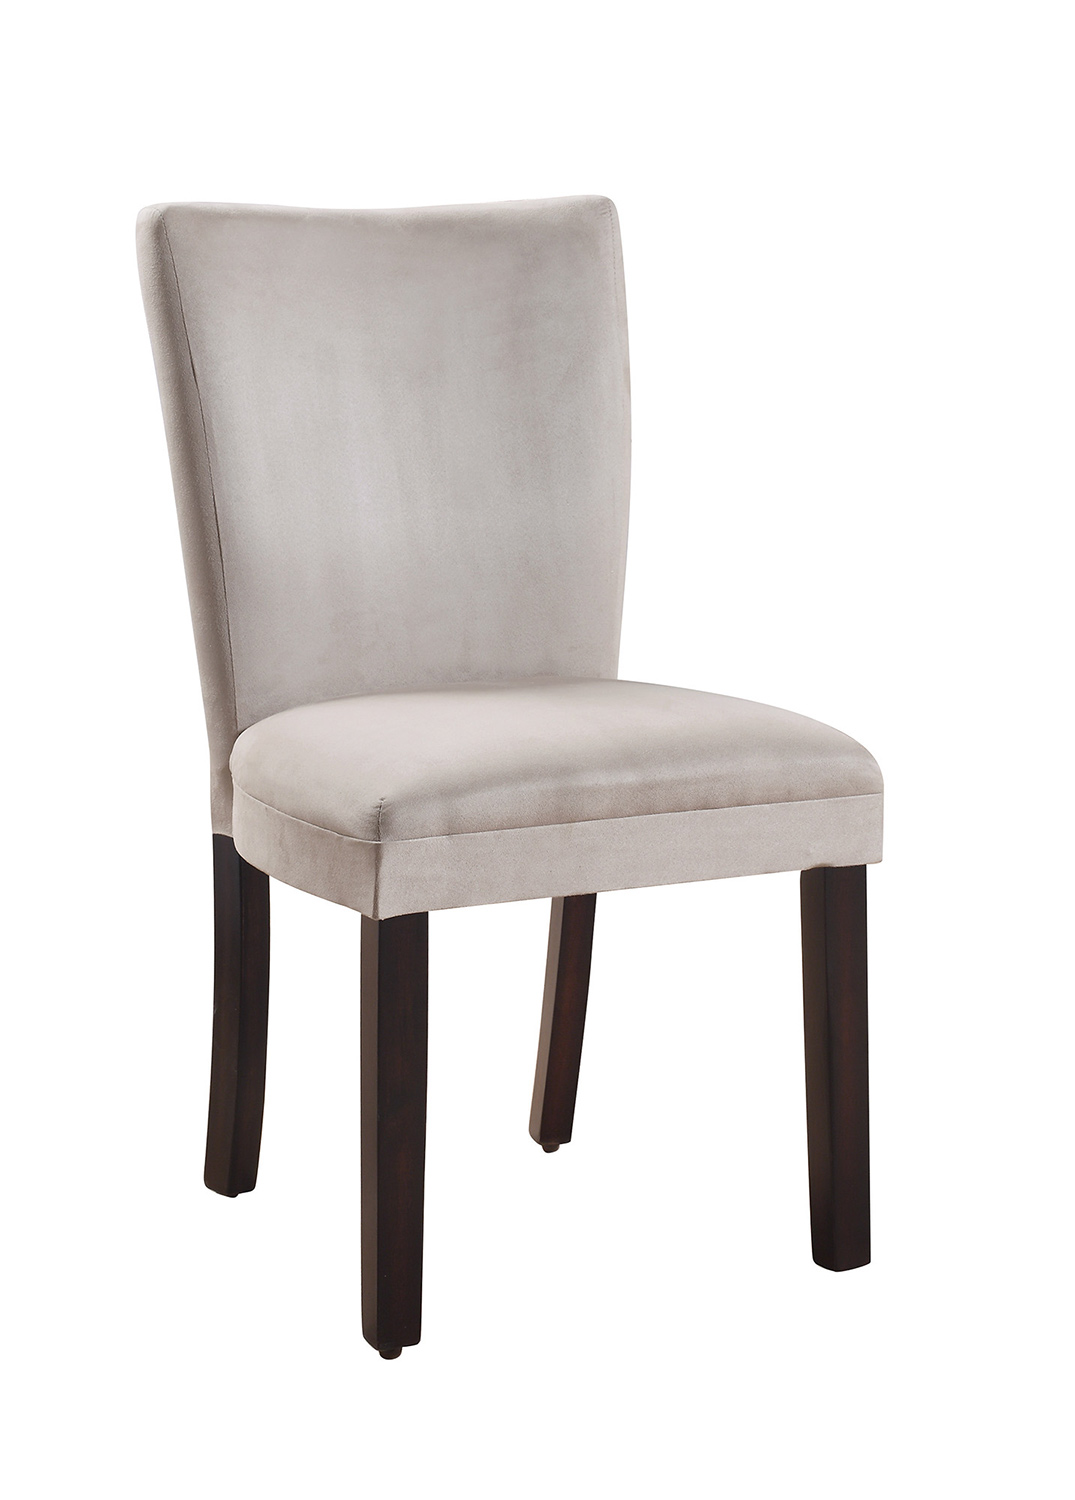 Coaster Castana Side Chair - Grey